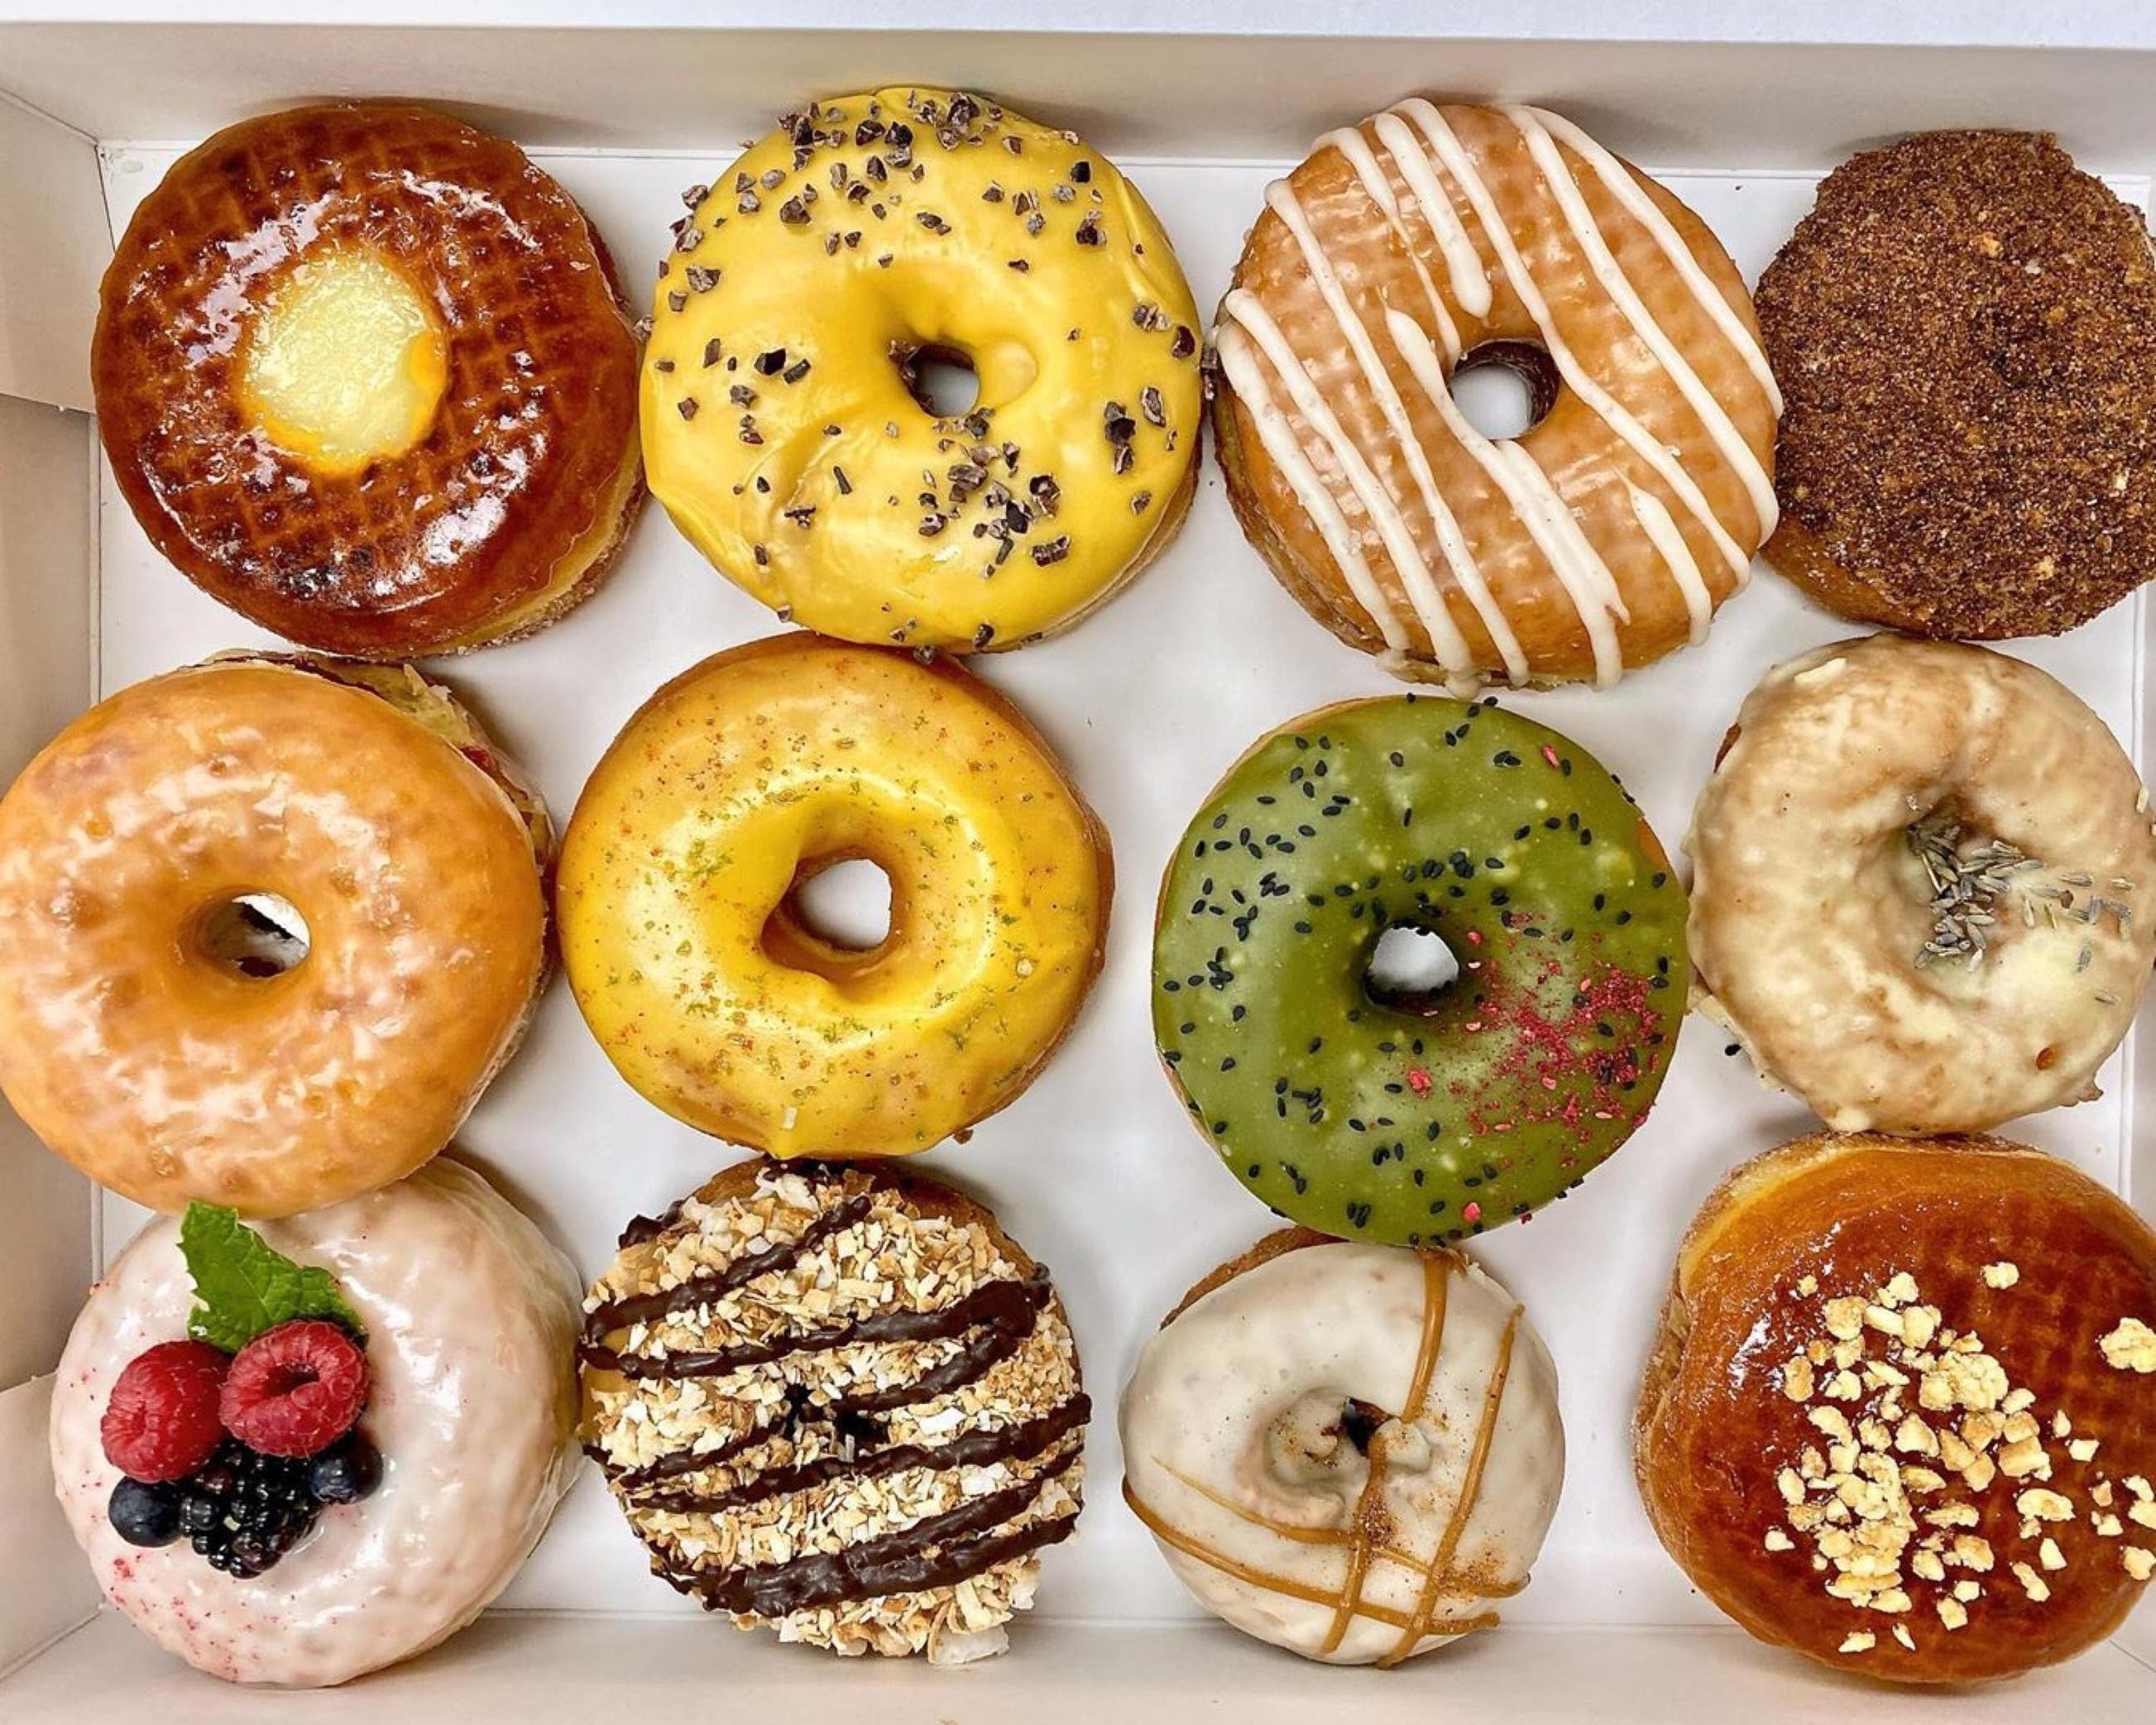 Box of a dozen donuts from Donut Friend